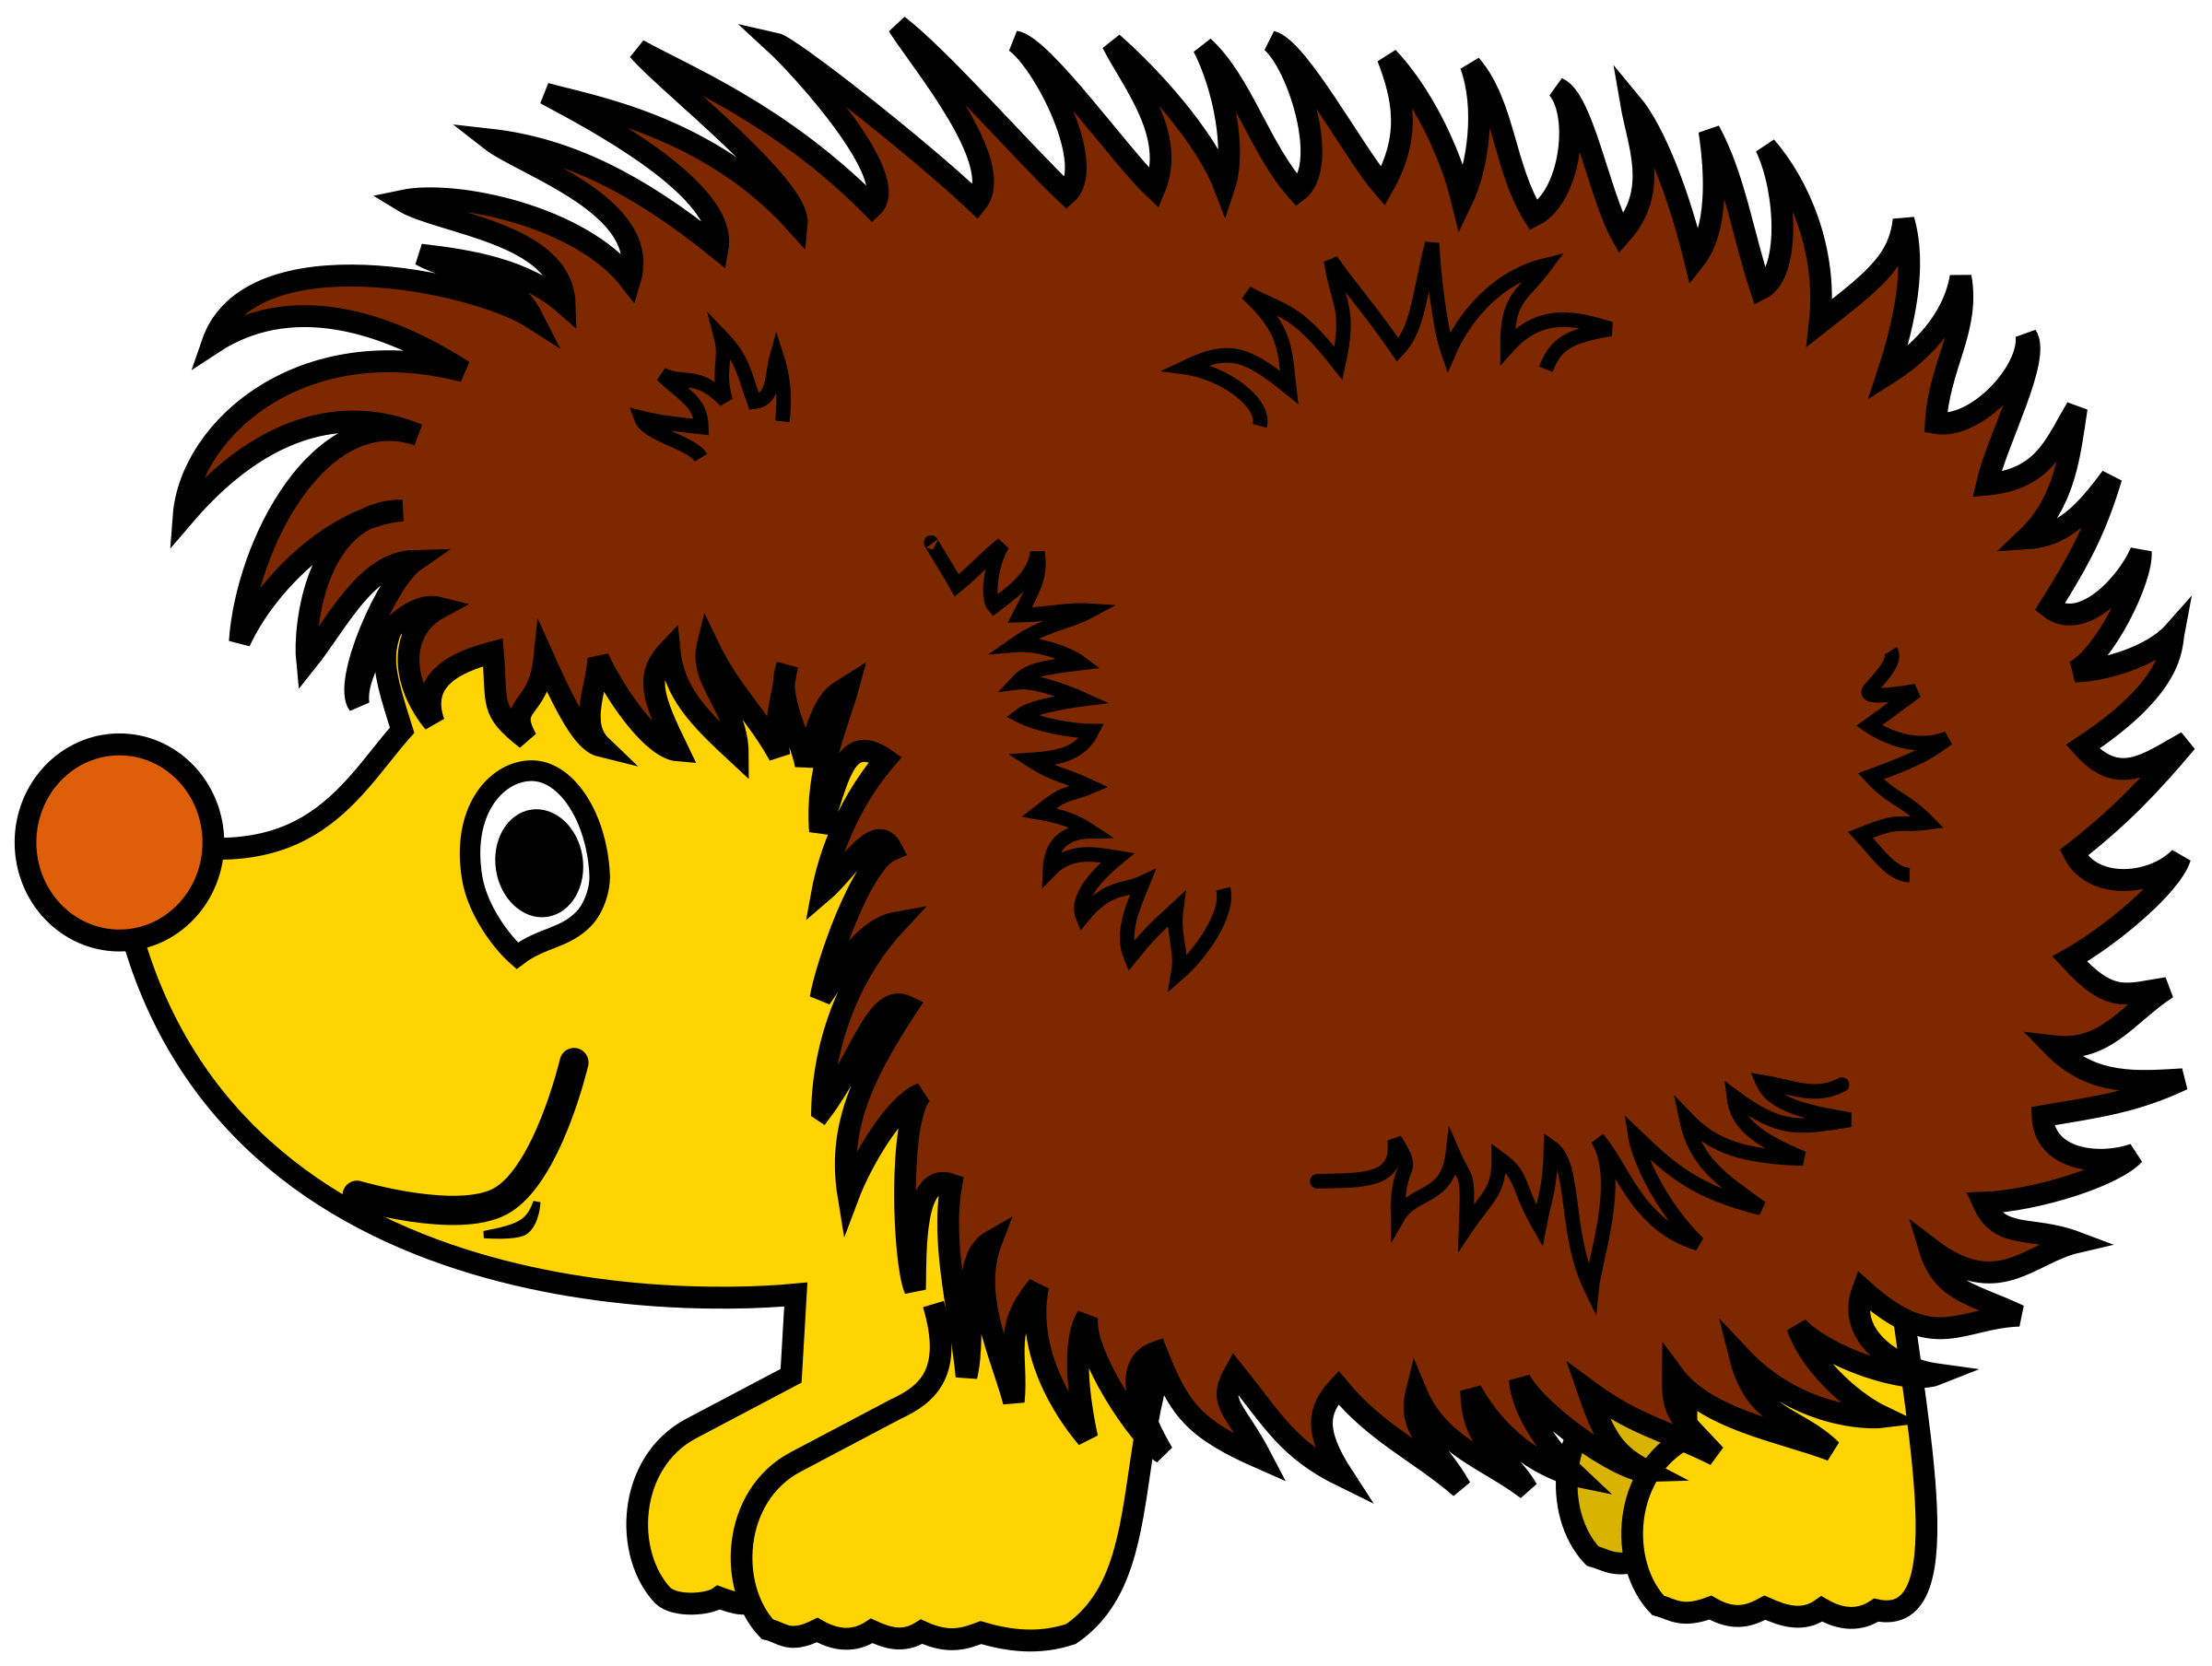 Hedgehog clipart school. By frankes a simple